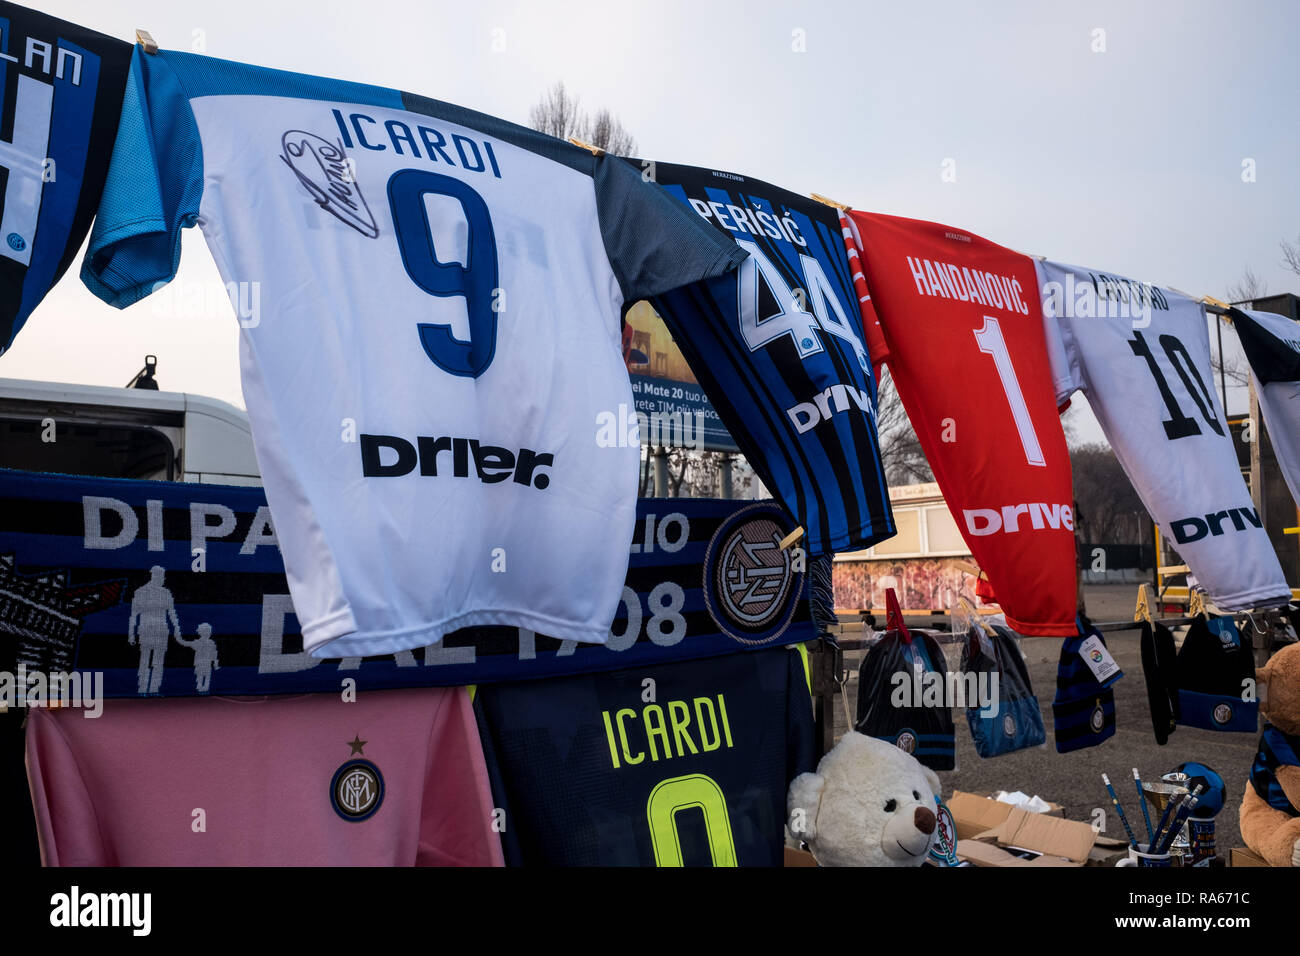 Milan, Italy. 1st January, 2019. Milan, Inter and Juventus t-shirts and gadgets for sale at a street vendor in front of the San Siro stadium, on January 01 2019 Credit: Mairo Cinquetti/Alamy Live News Stock Photo